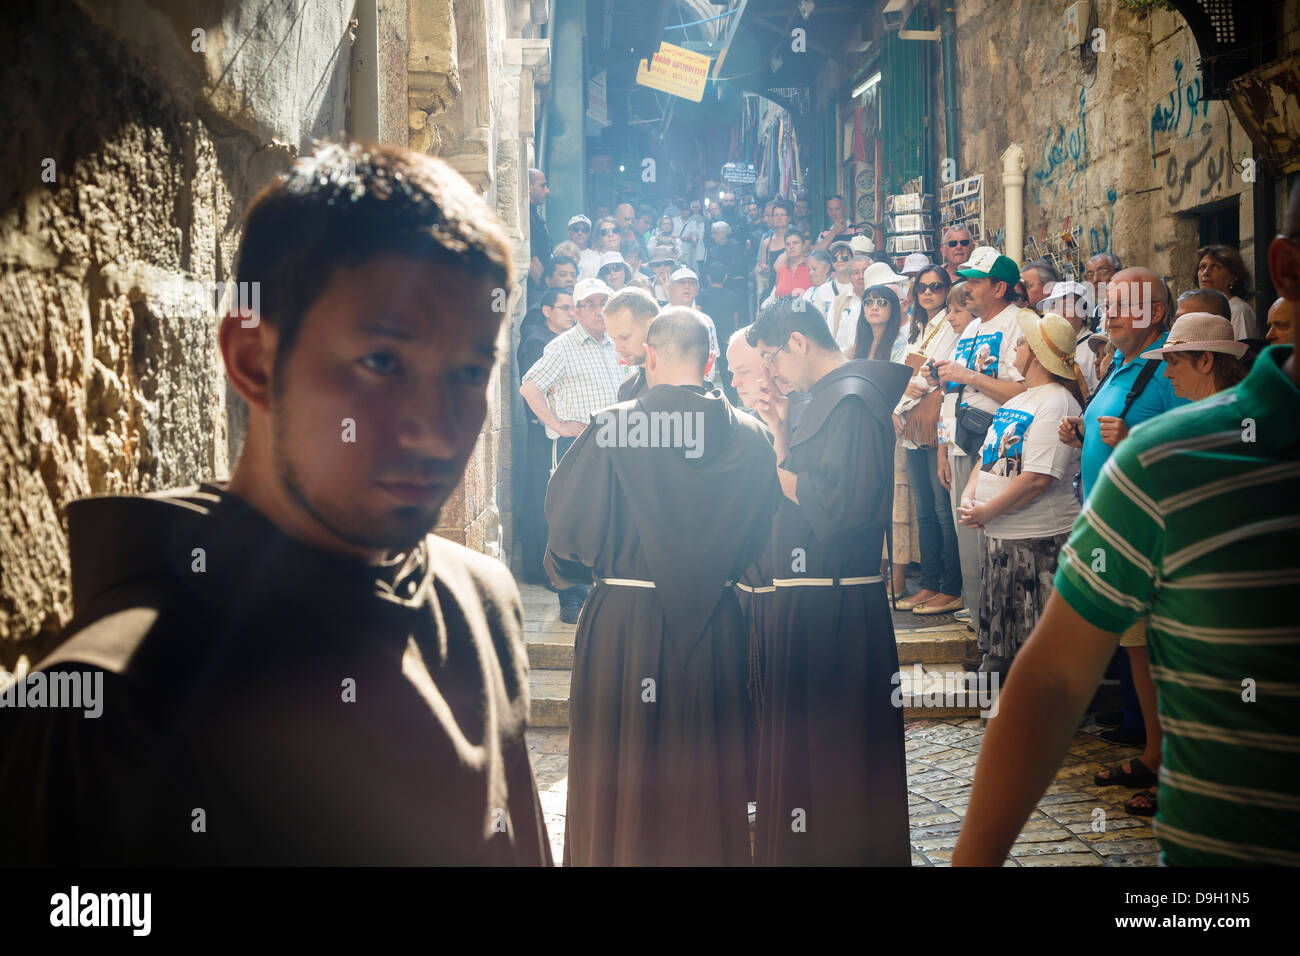 Franciscan monks at the Via Dolorosa during their regular friday procession in the old city, Jerusalem, Israel. - Stock Image